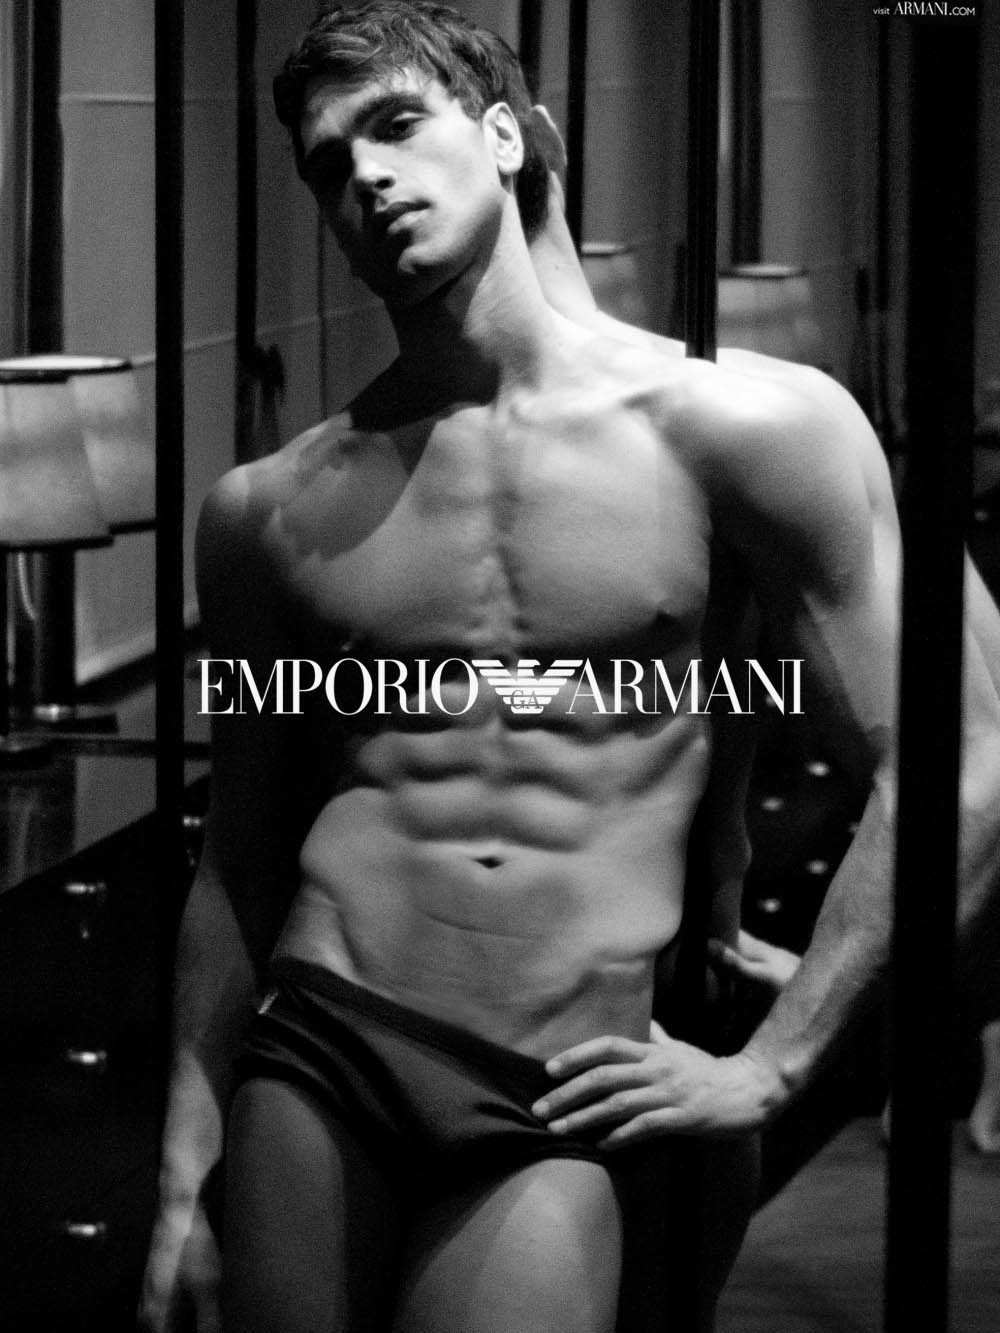 EMPORIO_ARMANI_SS15_SENSUAL_COLLECTION_FABIO_MANCINI